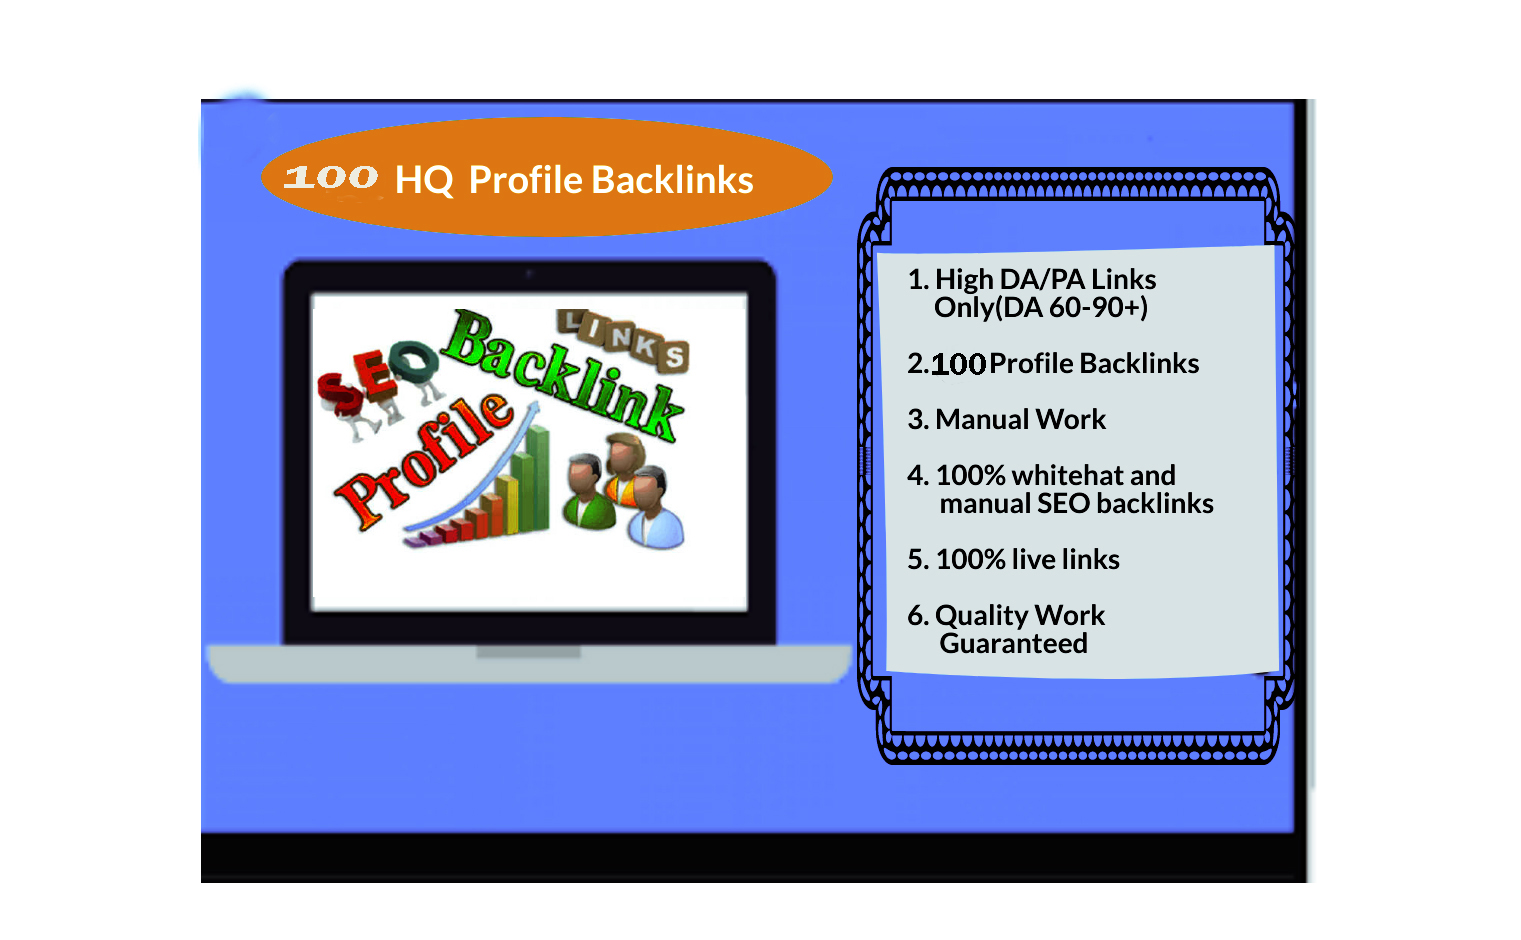 I Will Do Provide Manually 100 HQ Profile Backlinks for SEO